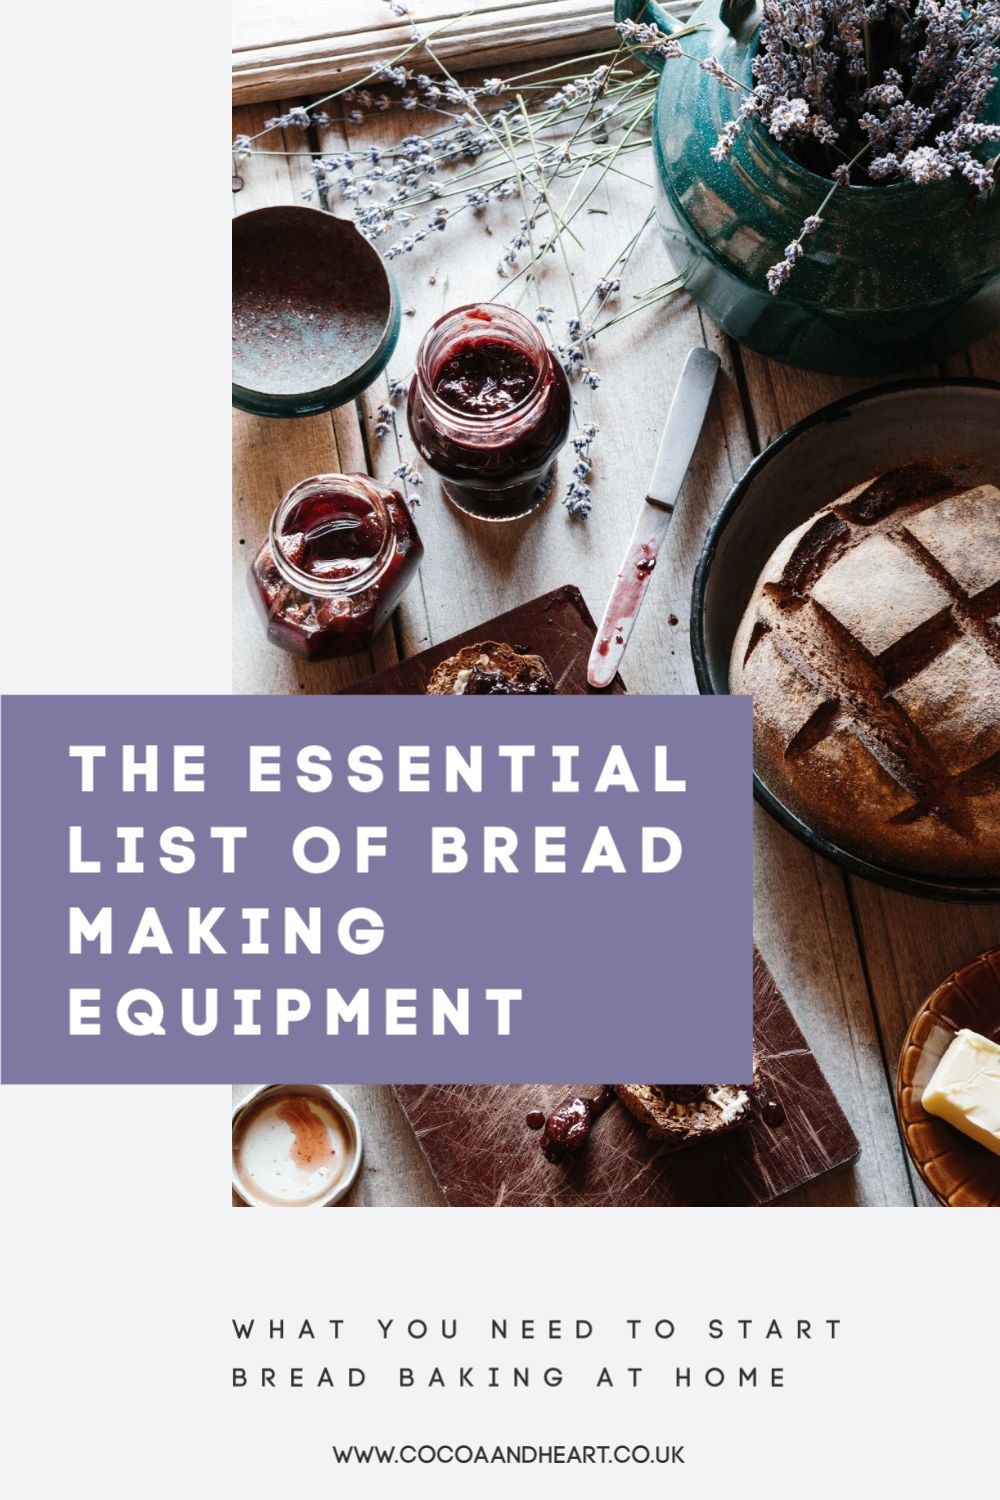 The ultimate bread making equipment list